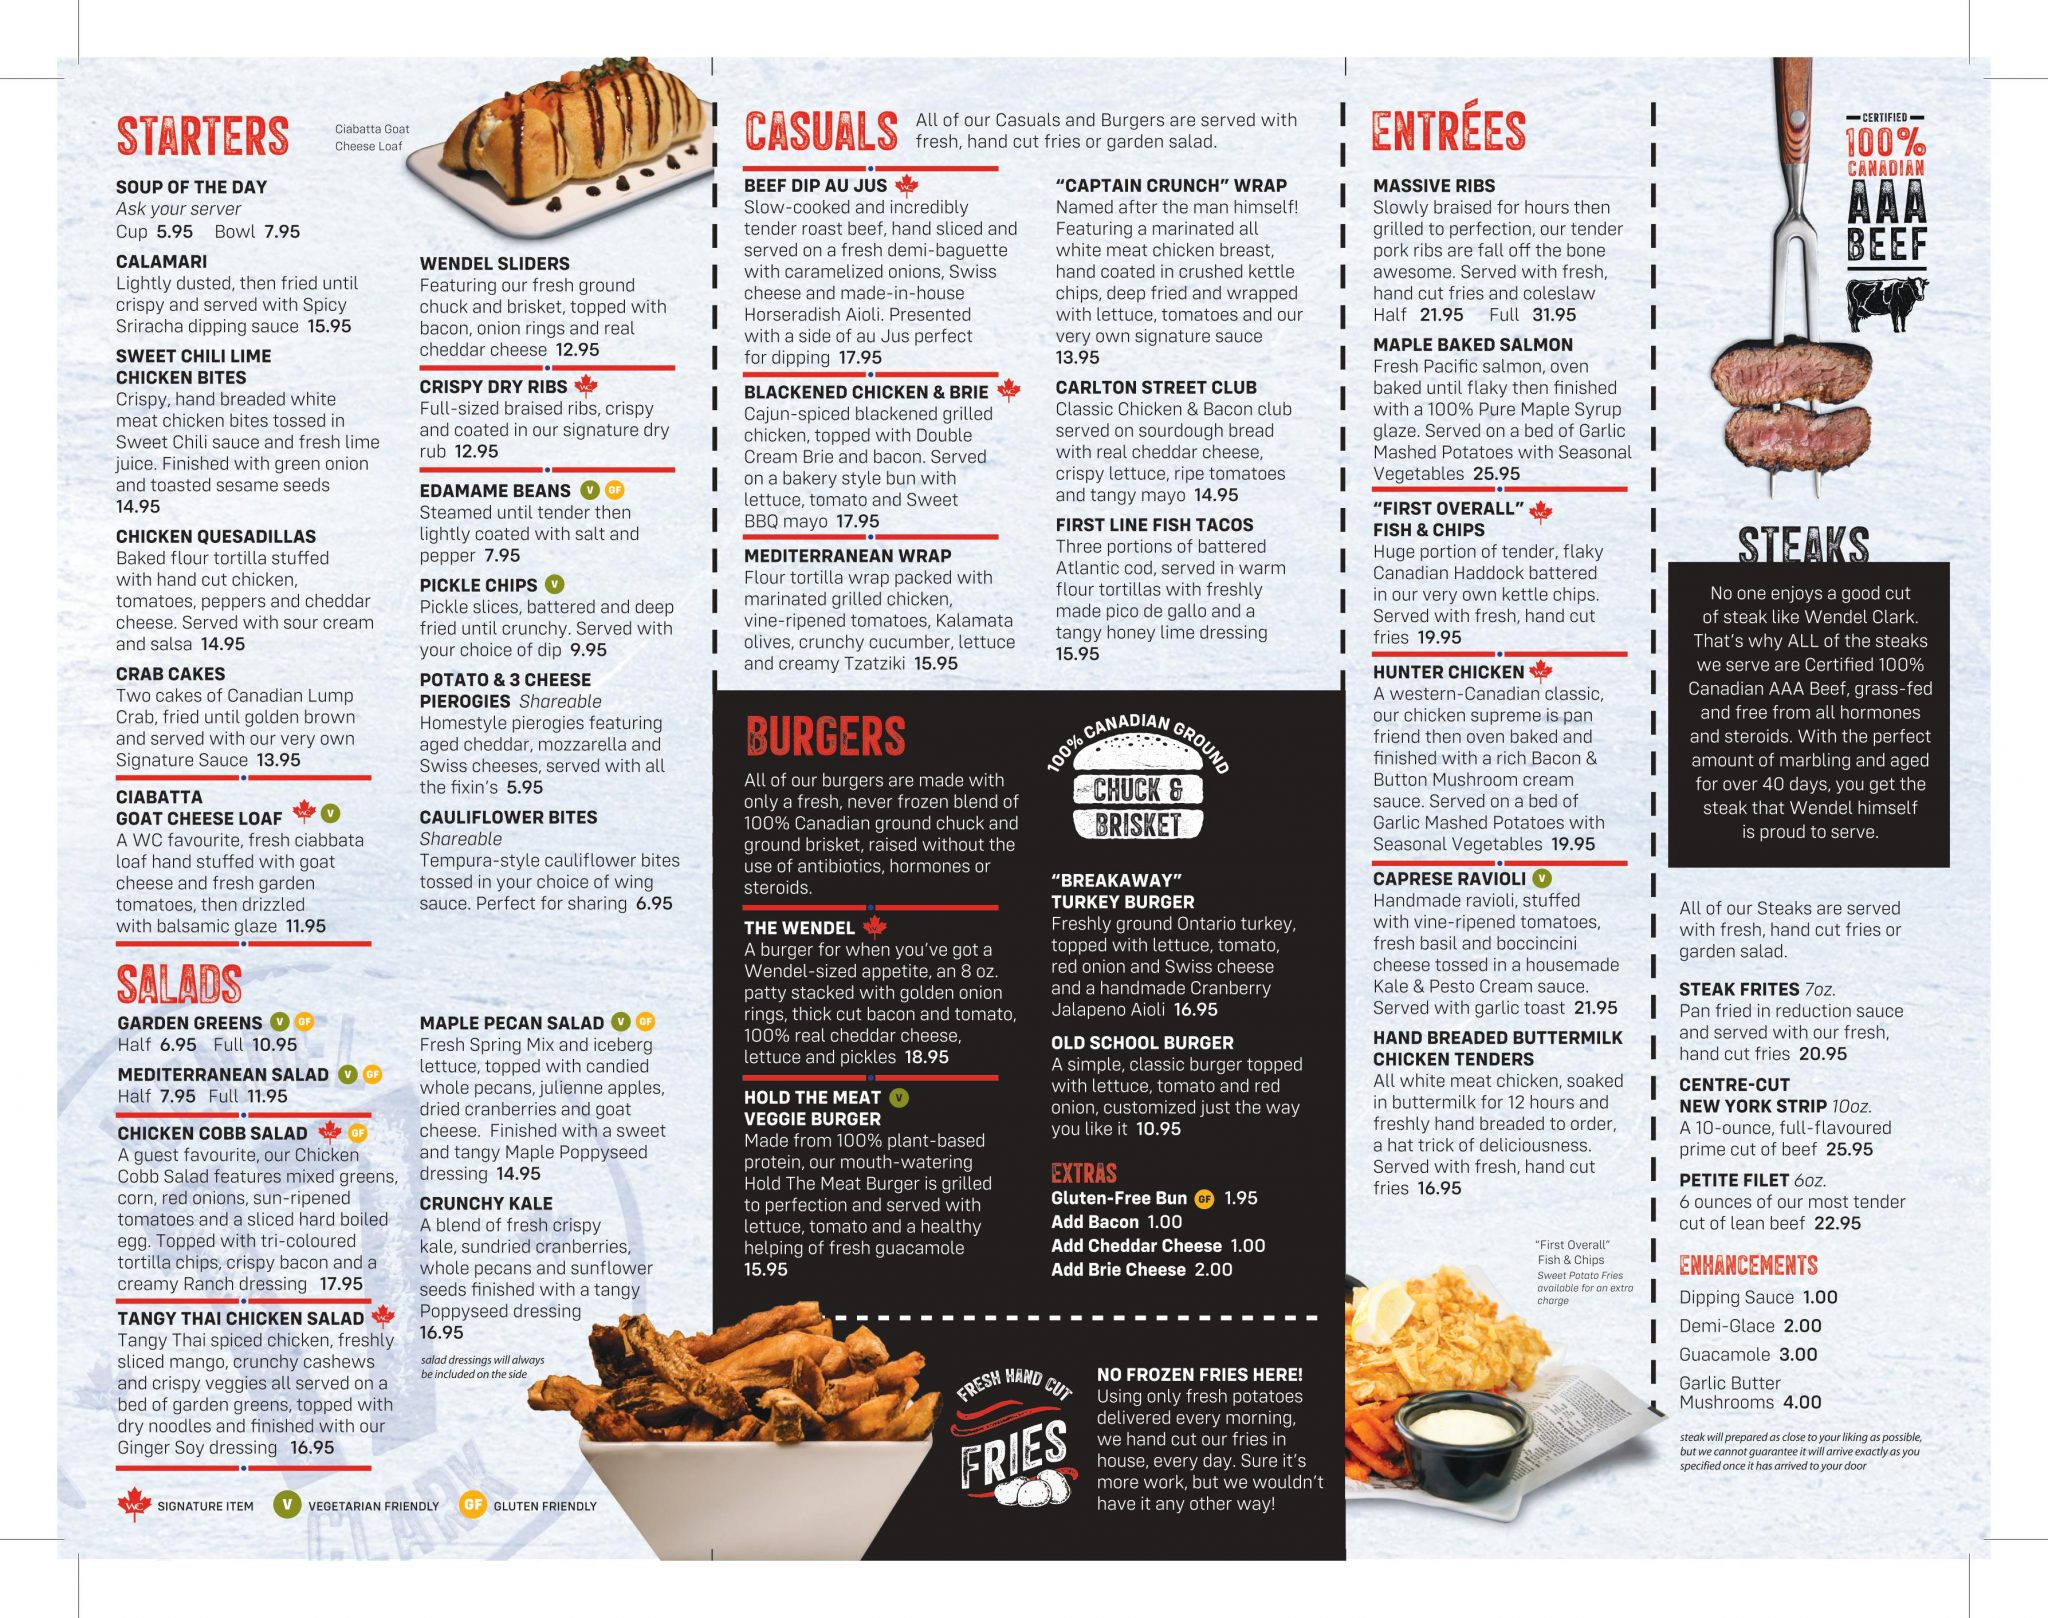 Menu – Wendel Clark's Classic Grill and Bar